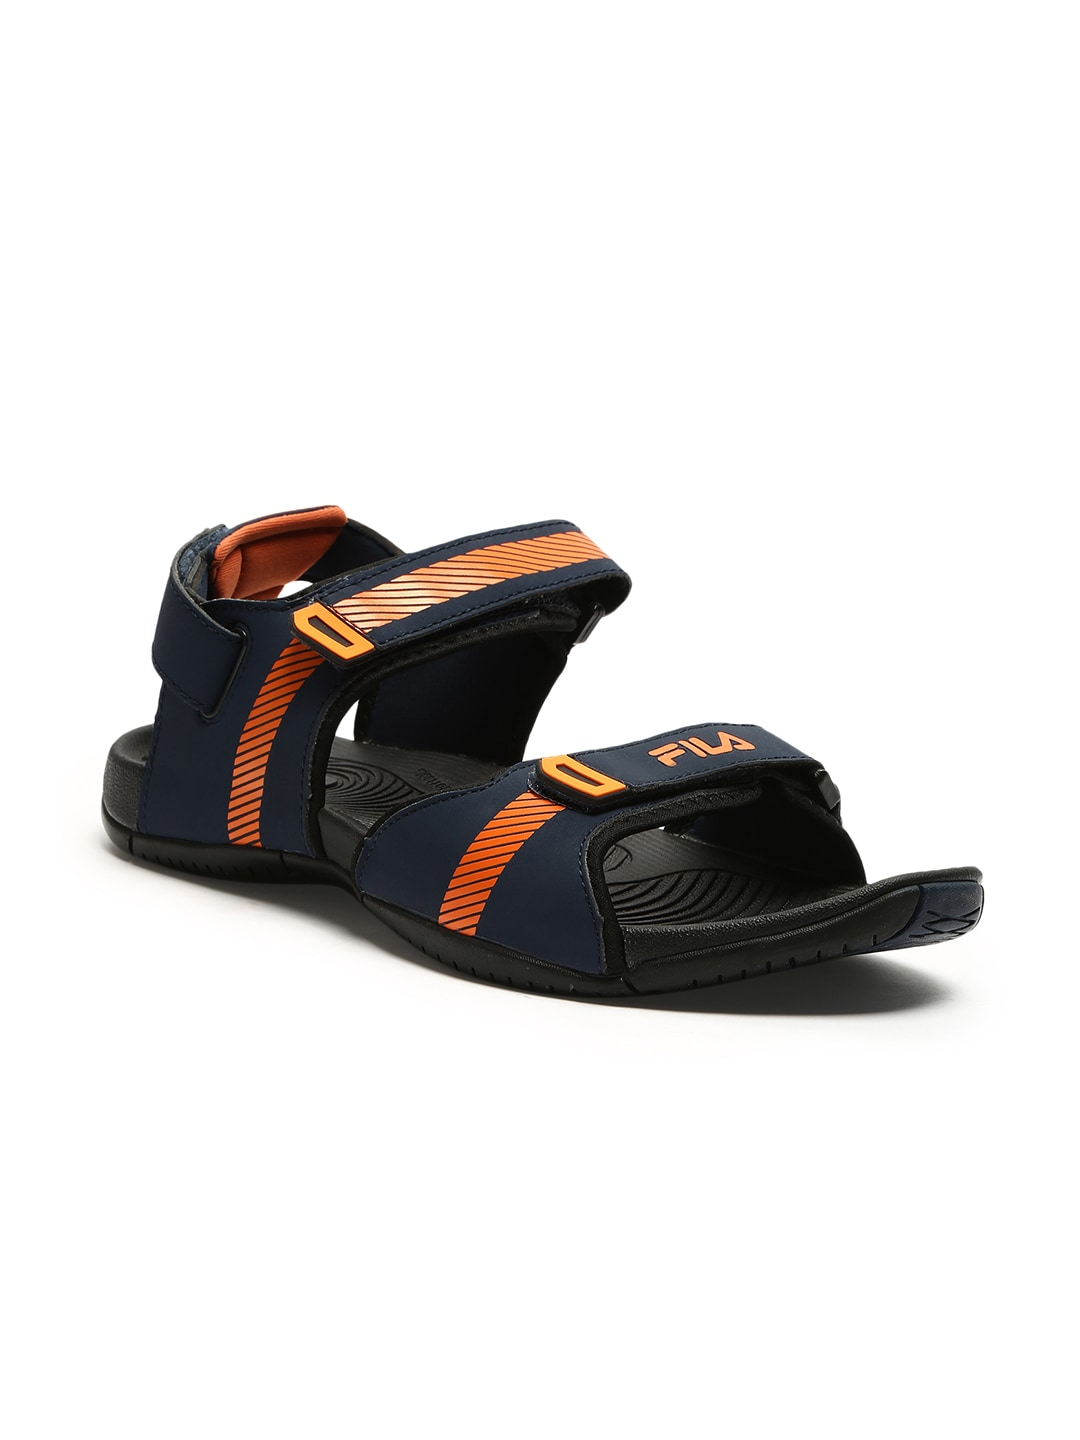 d8b1f589ccb0 Sandals - Buy Sandals Online for Men   Women in India